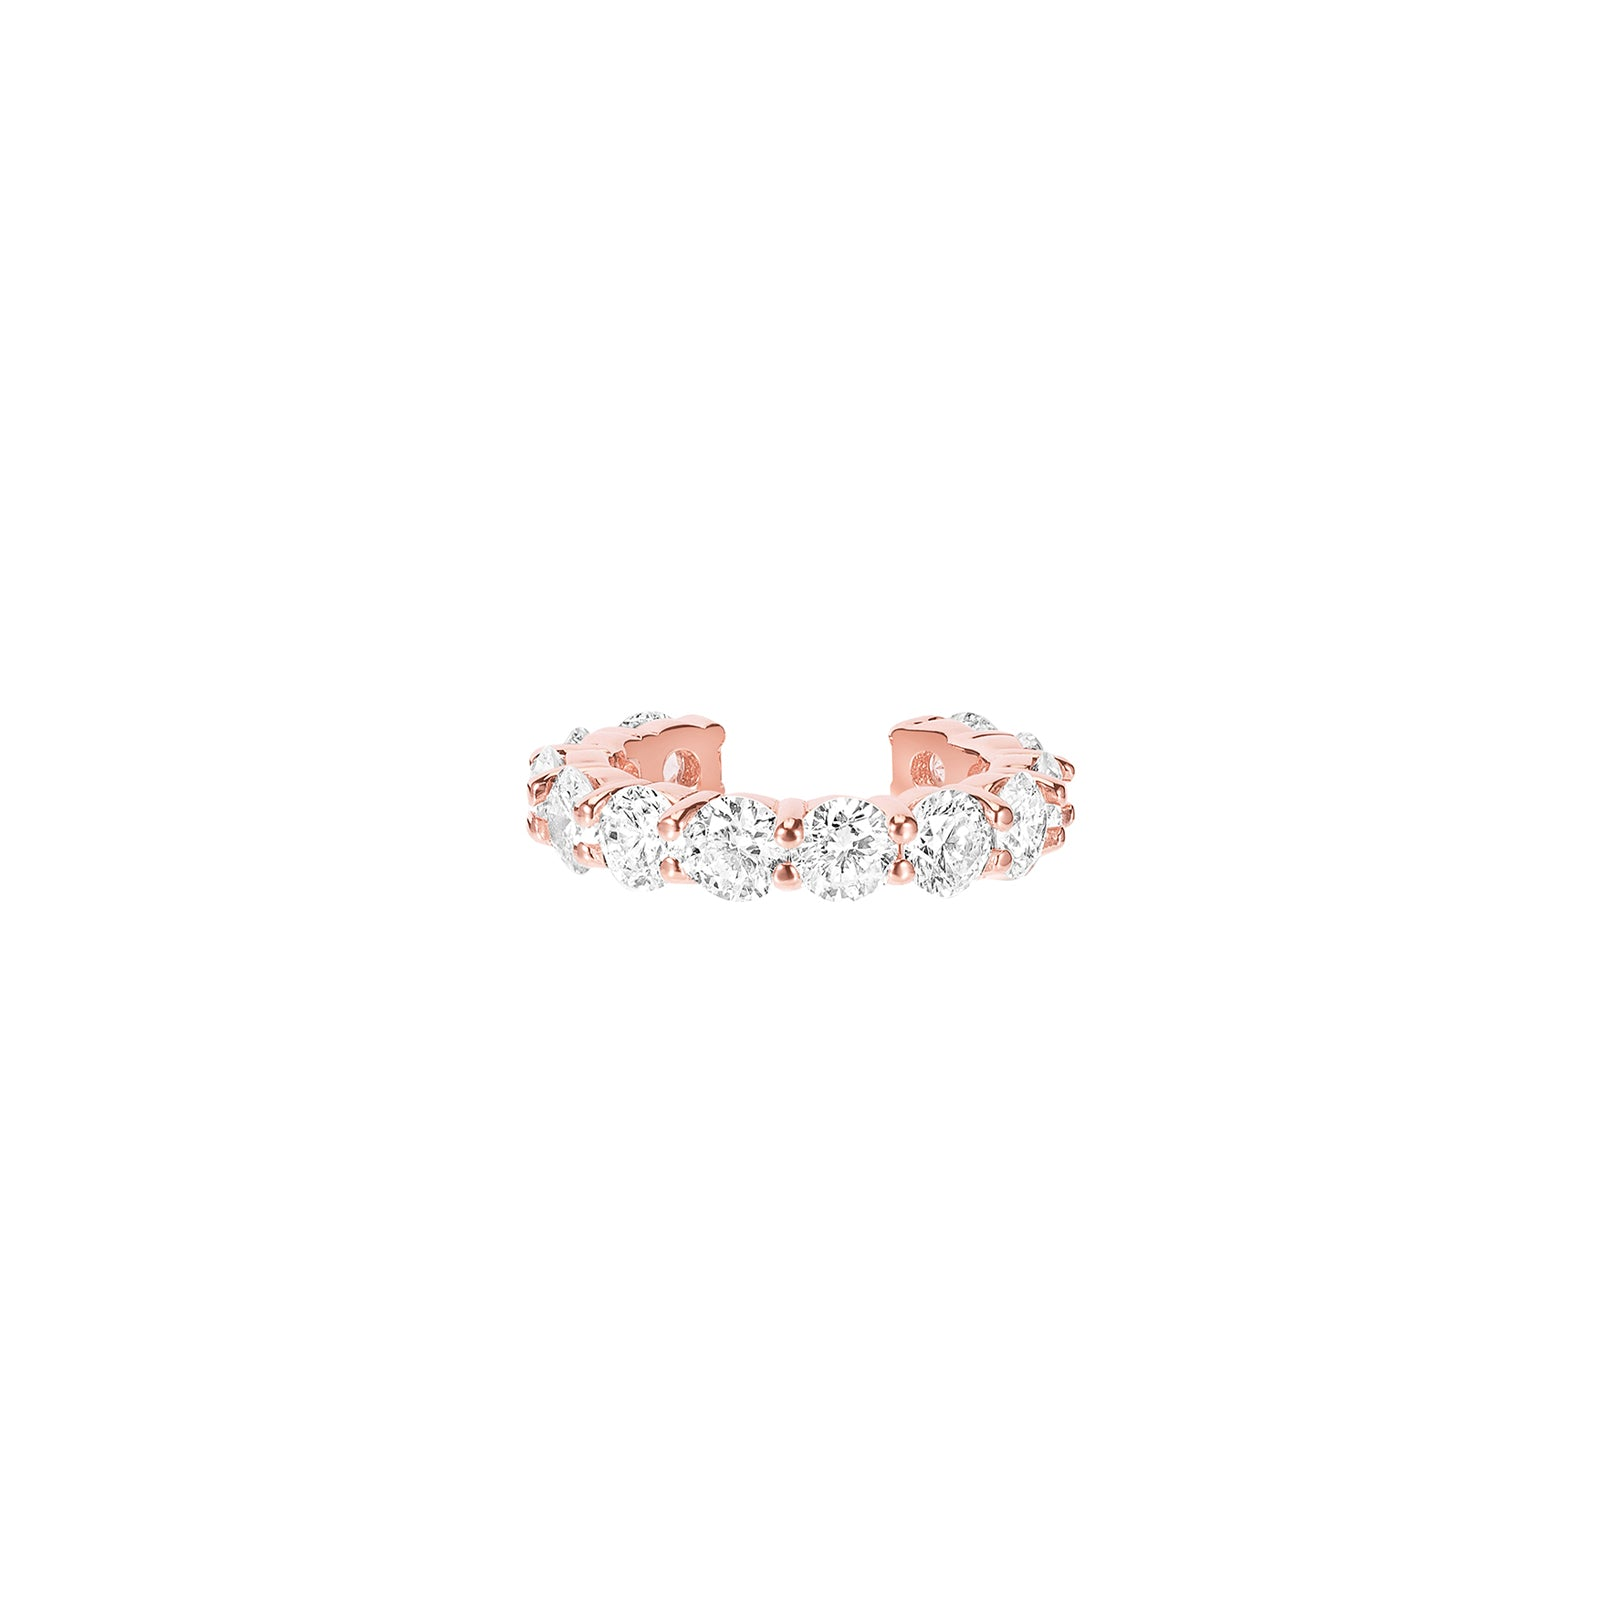 Carbon & Hyde Sparkler Diamond Earcuff - Rose Gold - Earrings - Broken English Jewelry